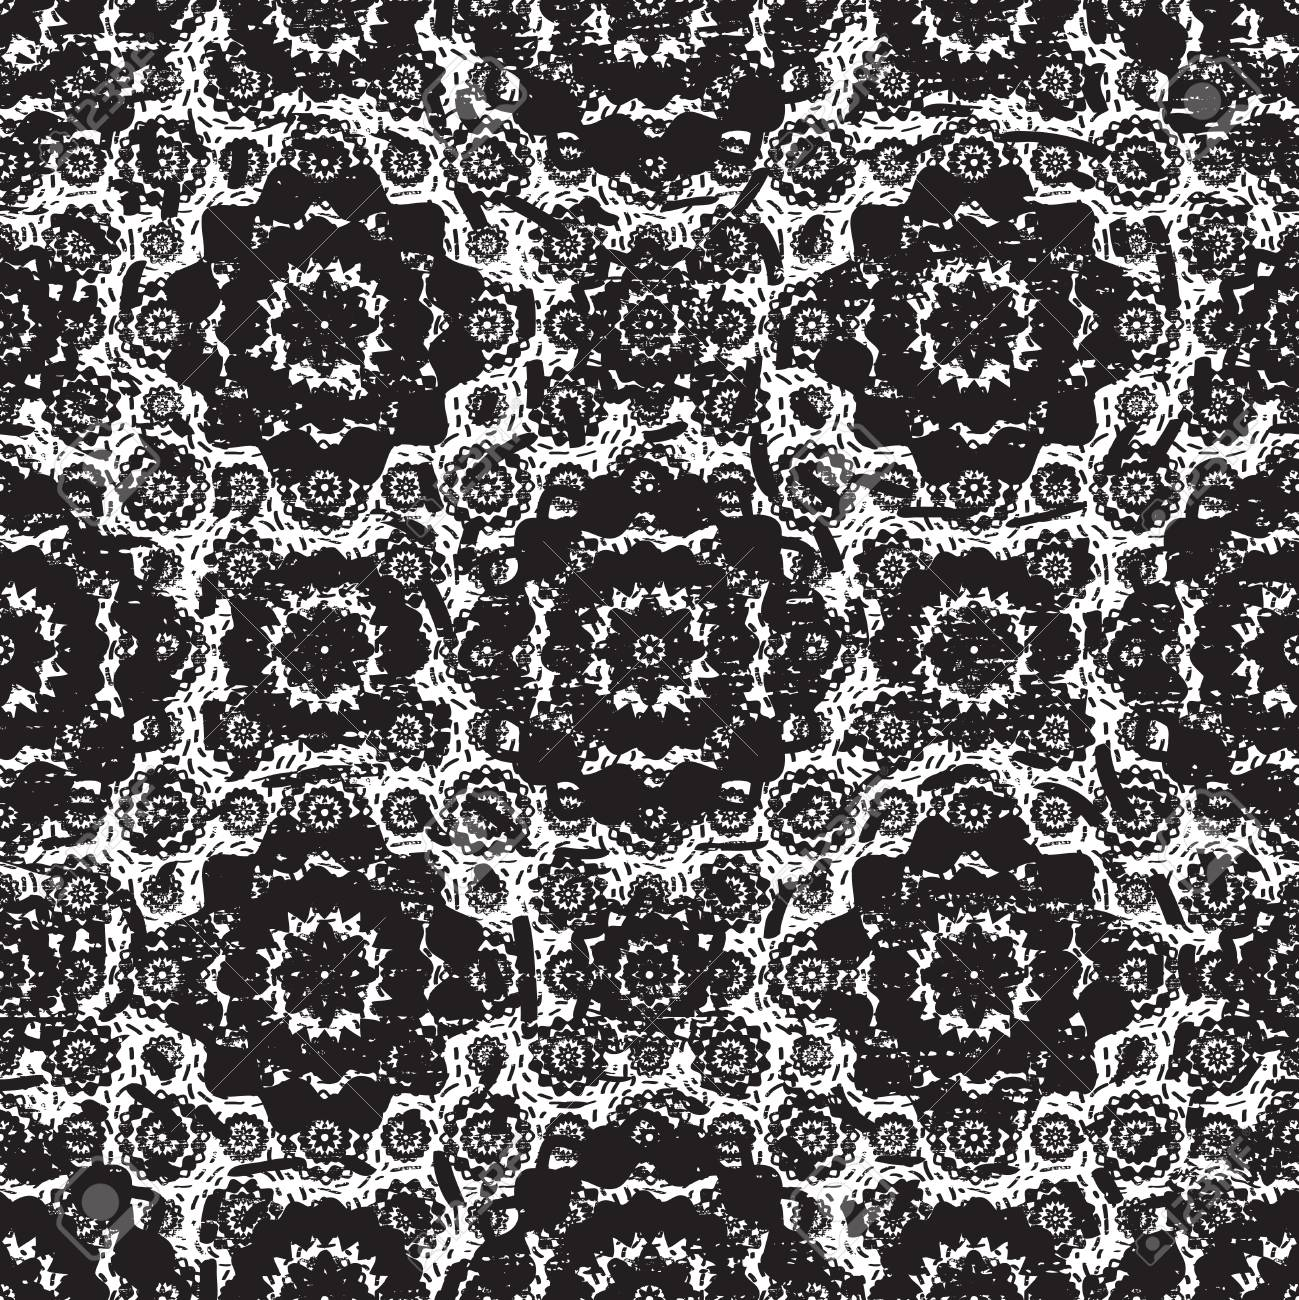 Alencon French Seamless Lace Vector Pattern, Openwork Ornament.. Royalty  Free Cliparts, Vectors, And Stock Illustration. Image 124429064.   1300x1299